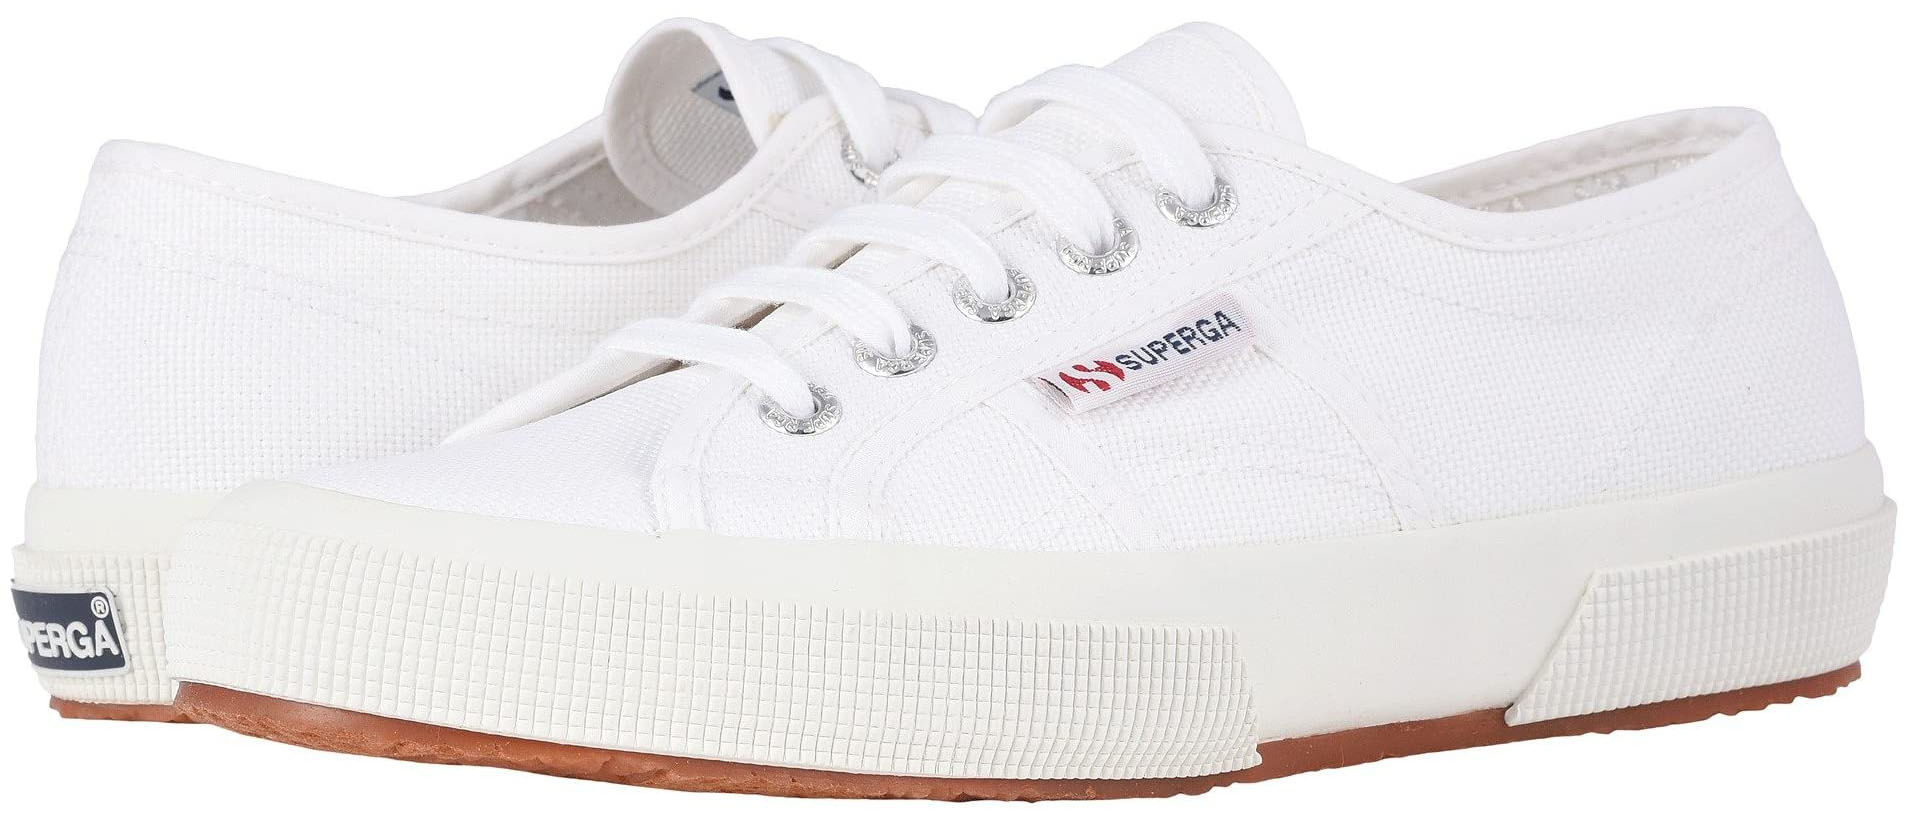 The Superga 2750 Classic sneakers feature sturdy cotton unlined canvas upper and natural rubber outsole